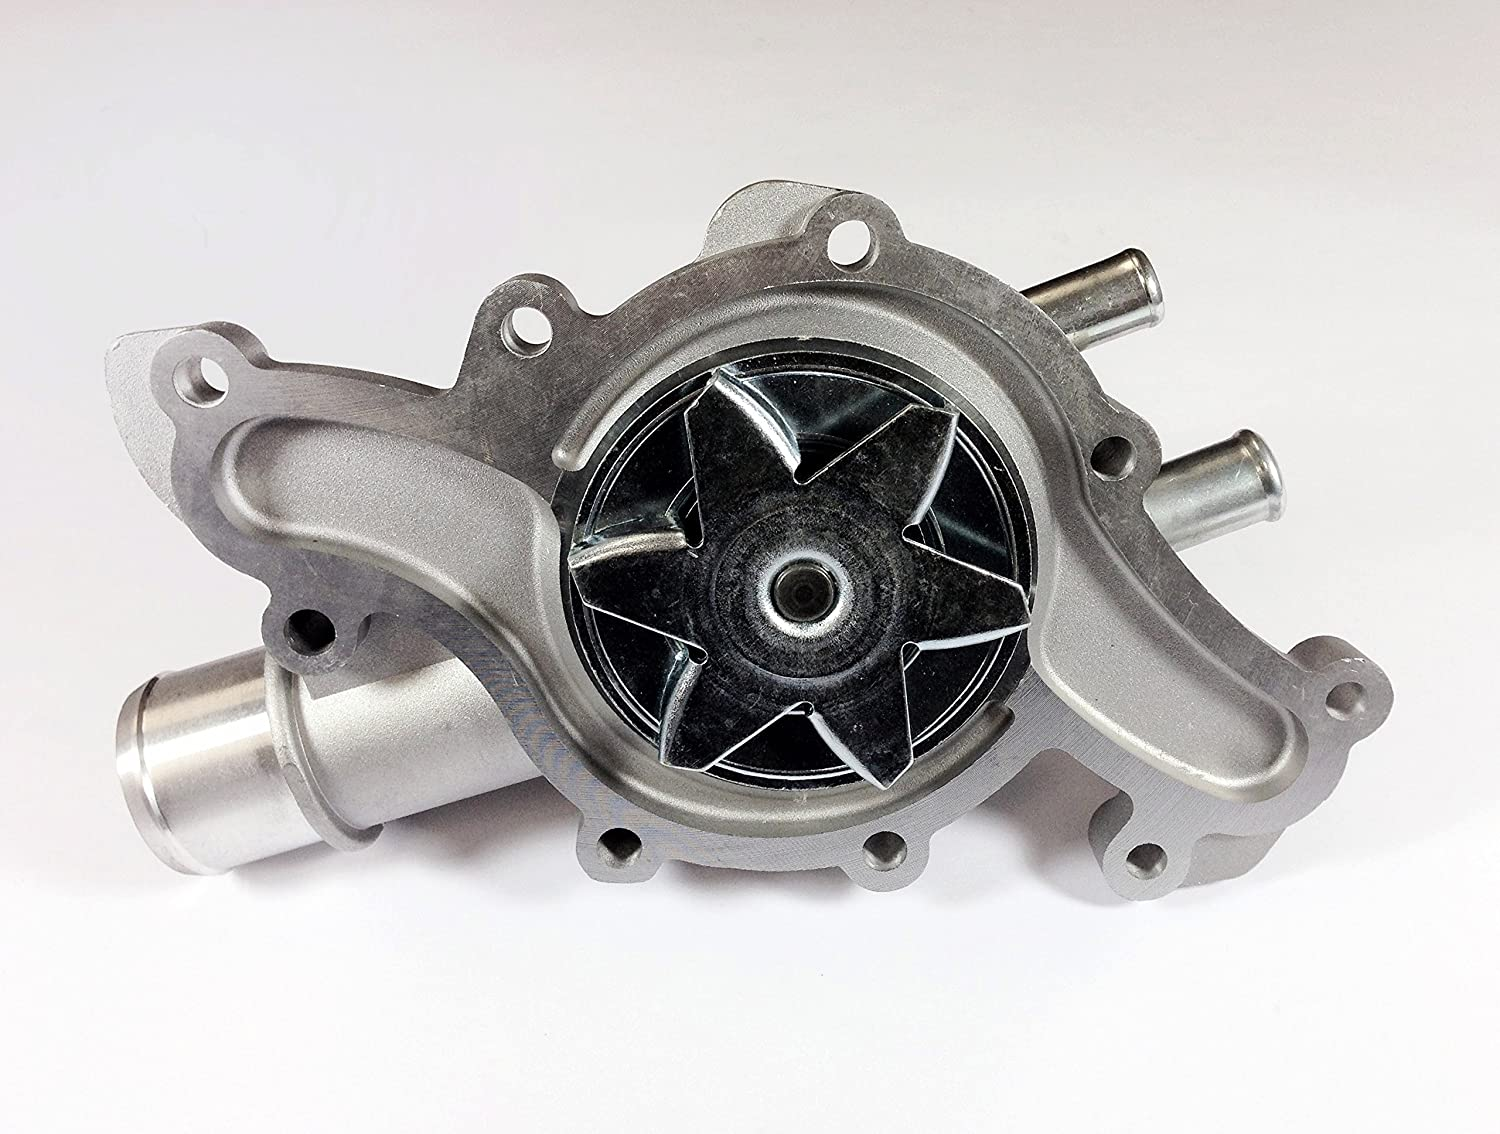 Oaw F1920 Engine Water Pump For Ford Mustang Cobra Gt V8 2007 50l 1994 1995 Automotive